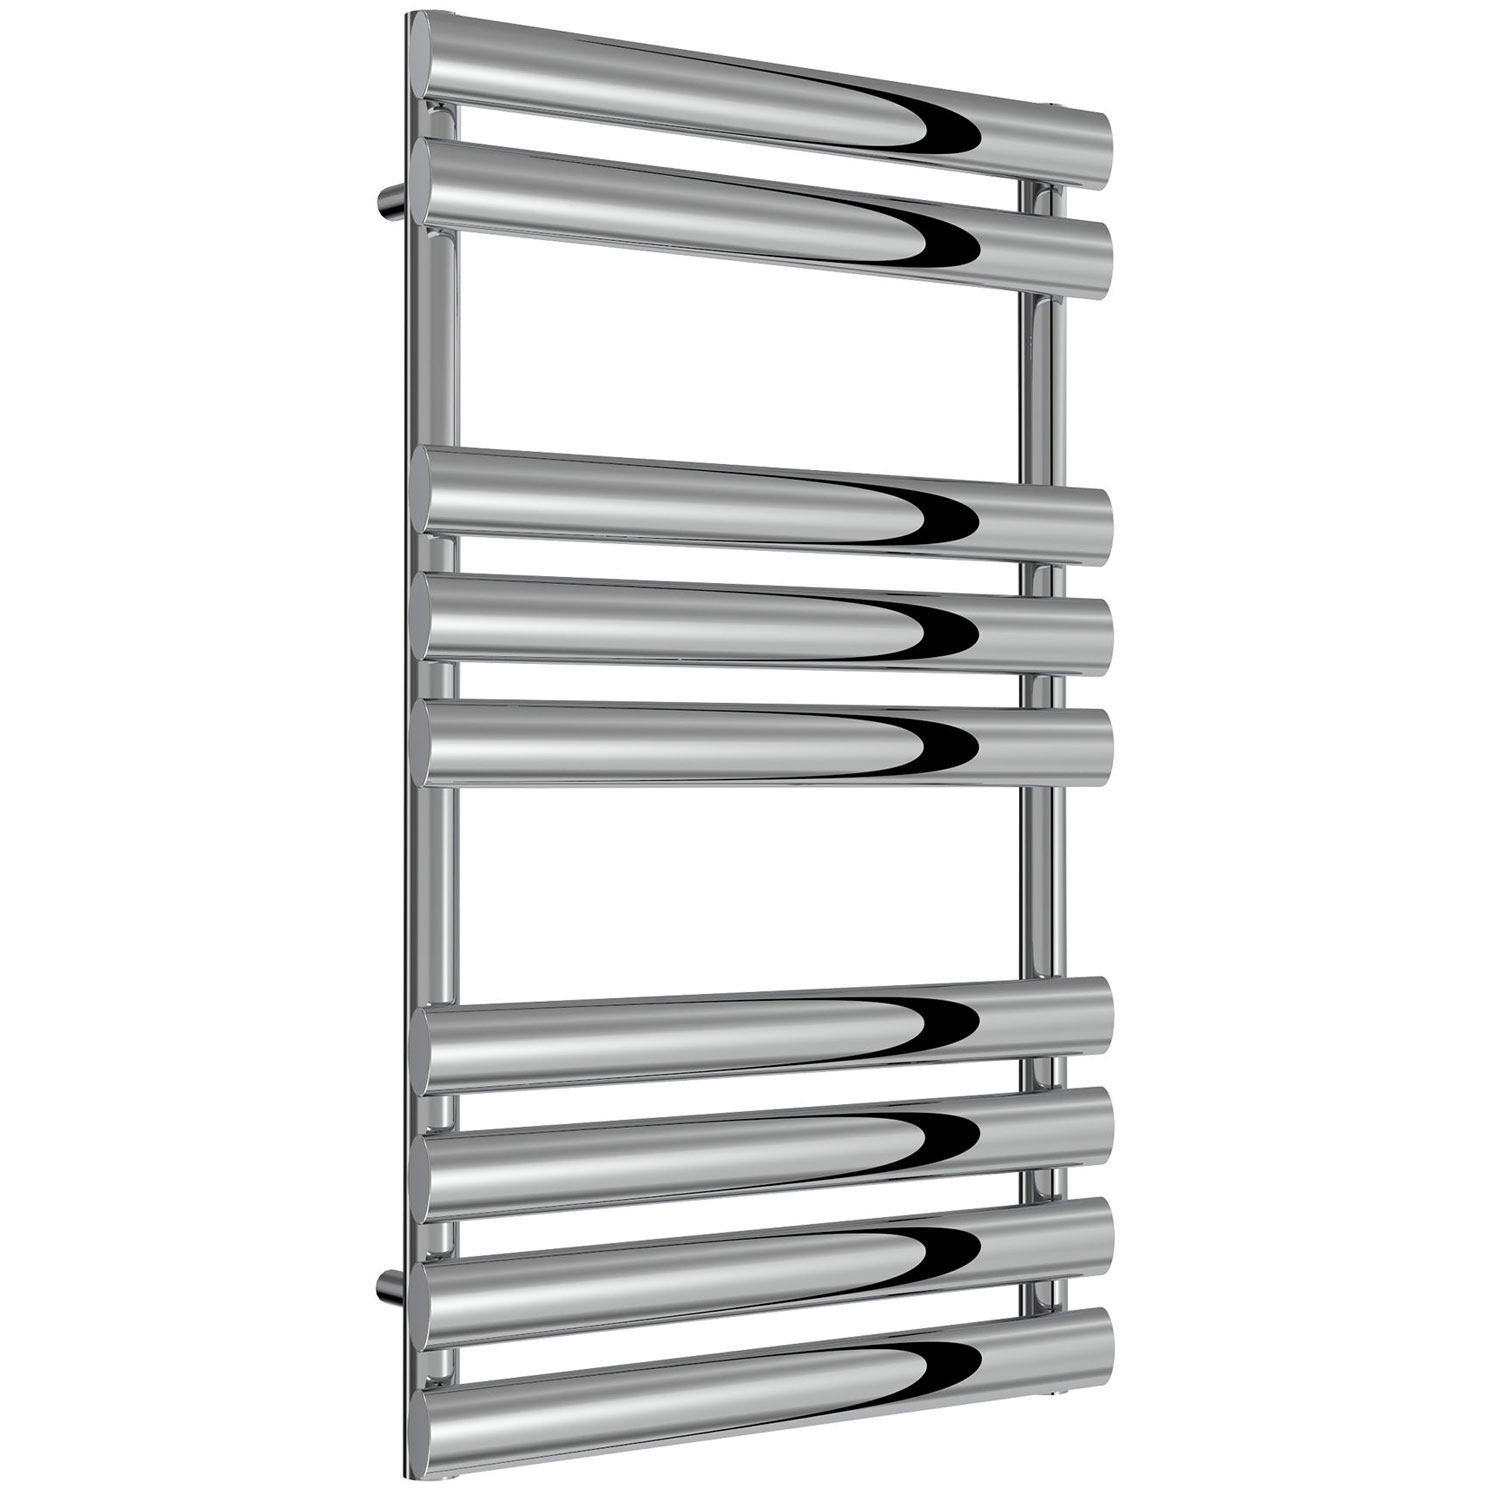 Reina Arbori Designer Heated Towel Rail 820mm H x 500mm W Chrome